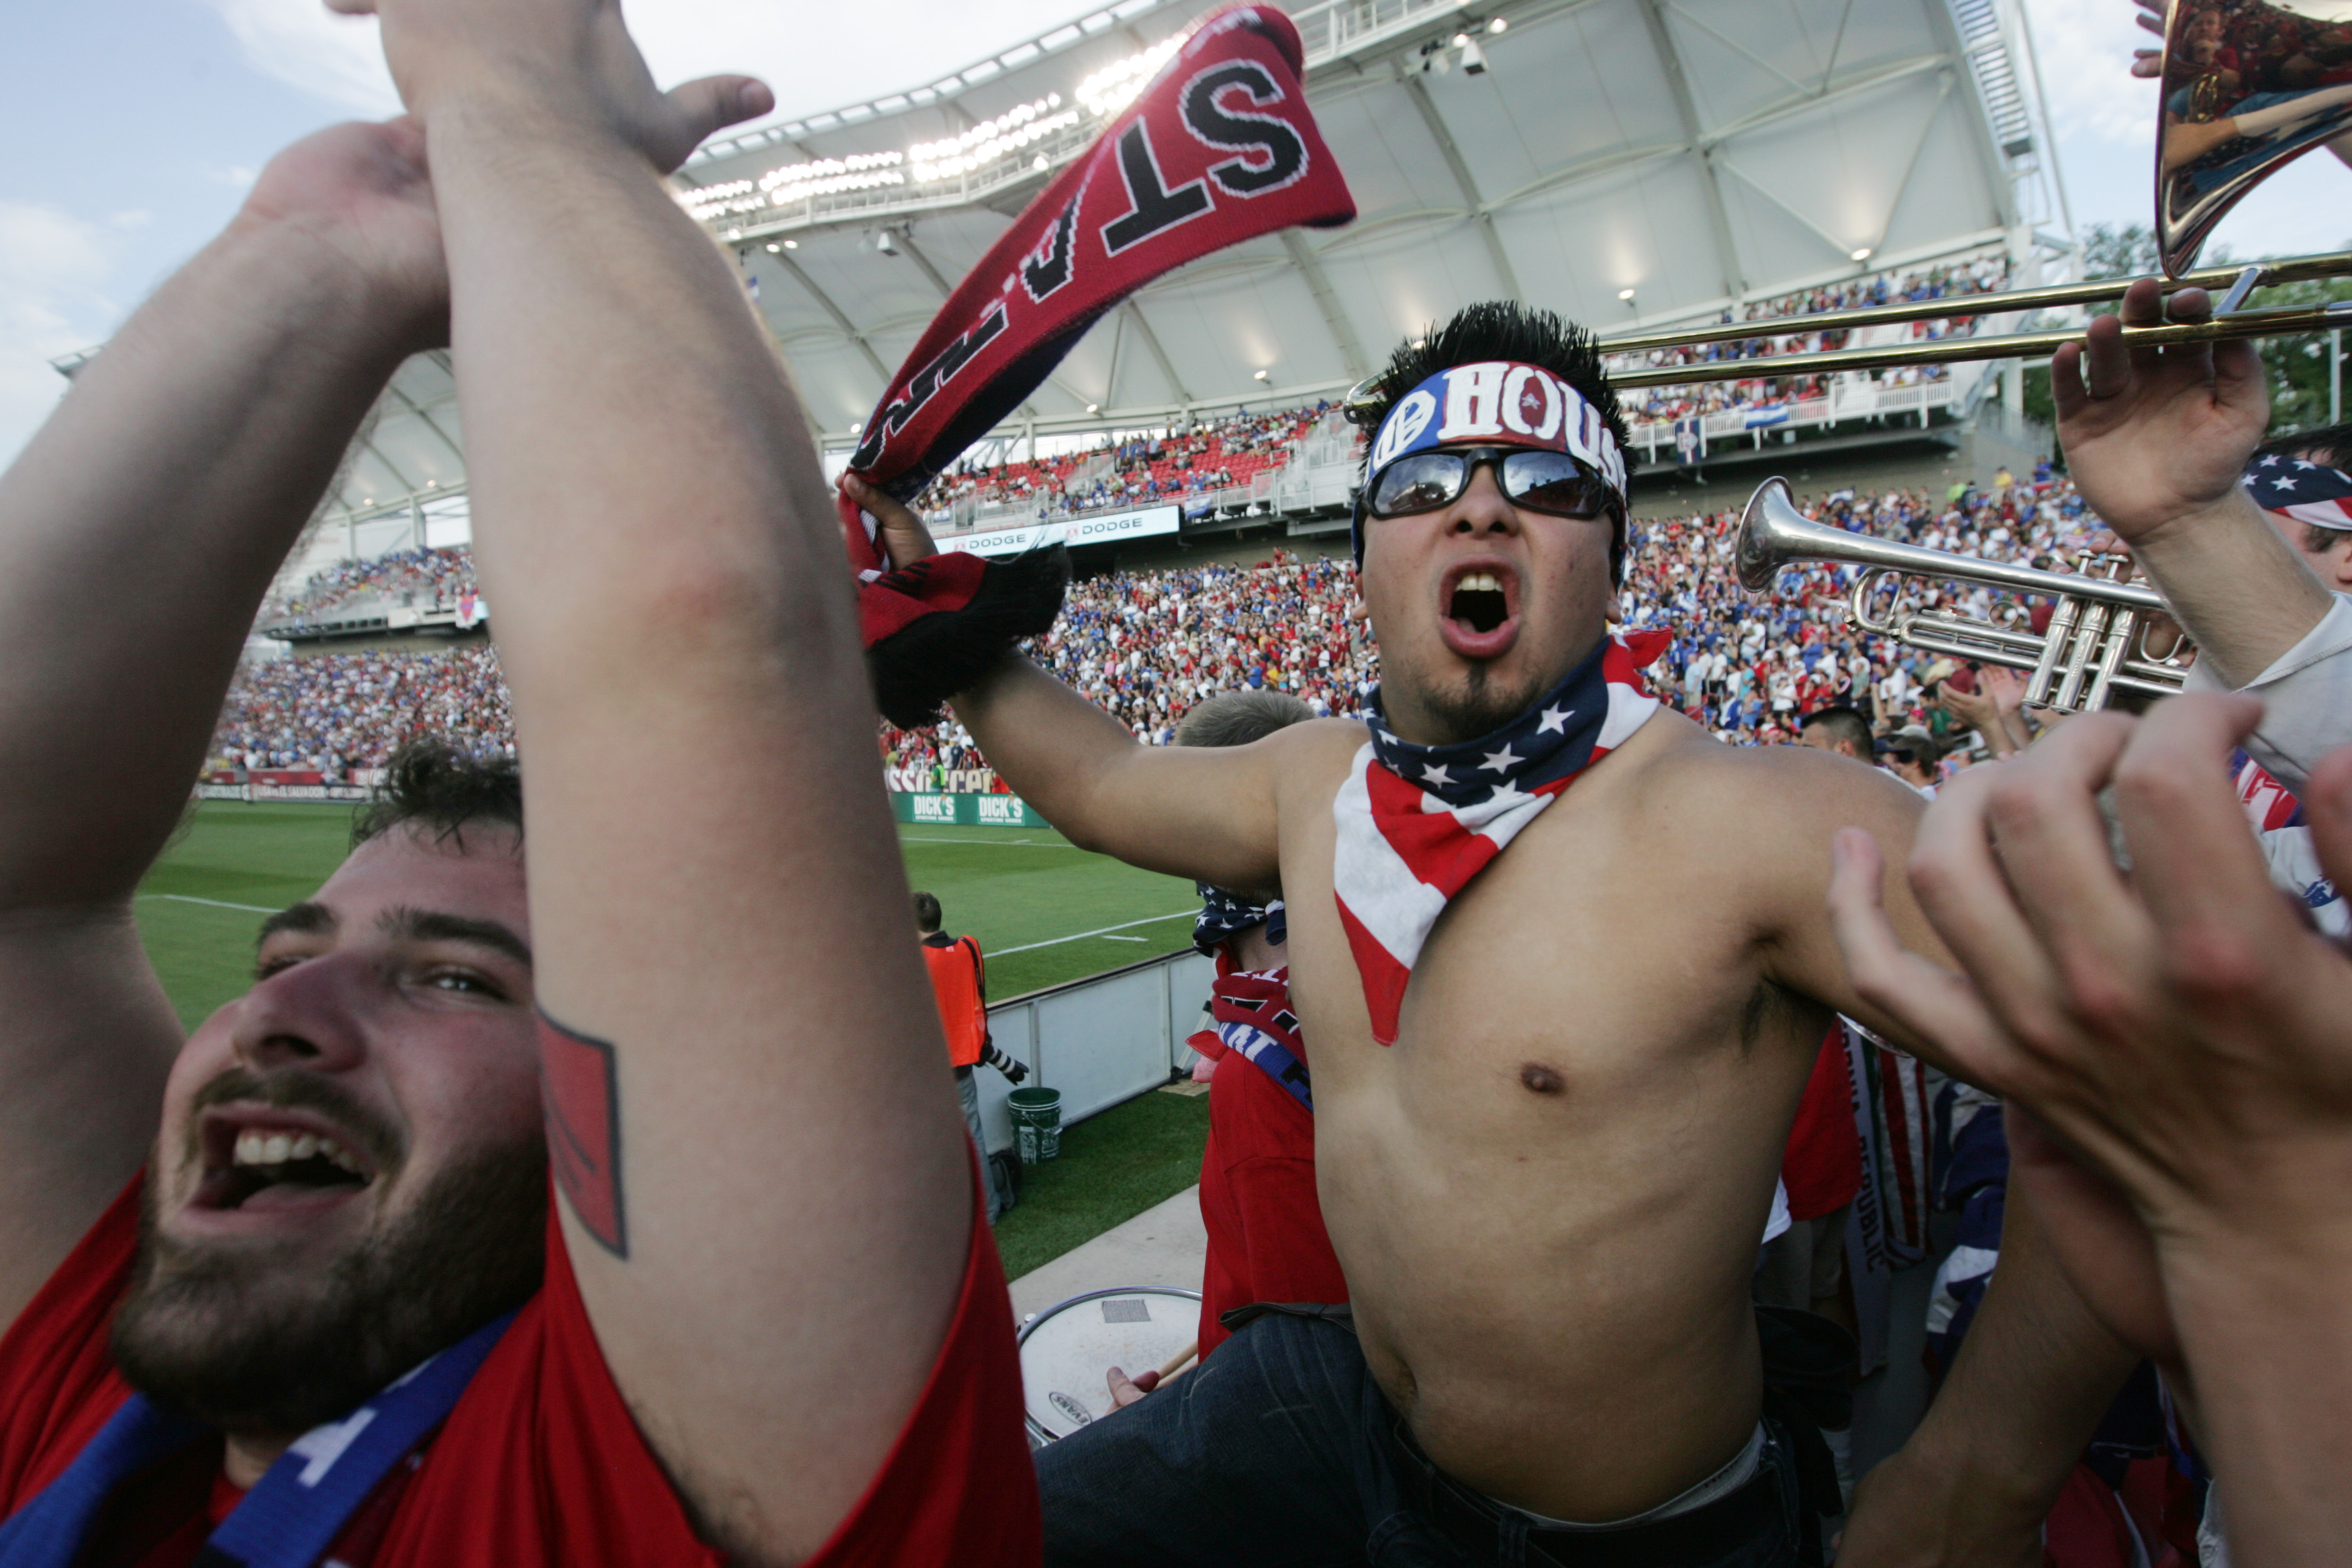 san francisco photojournalist douglas zimmerman  world cup usa a photo essay on the melting pot of soccer fans in america